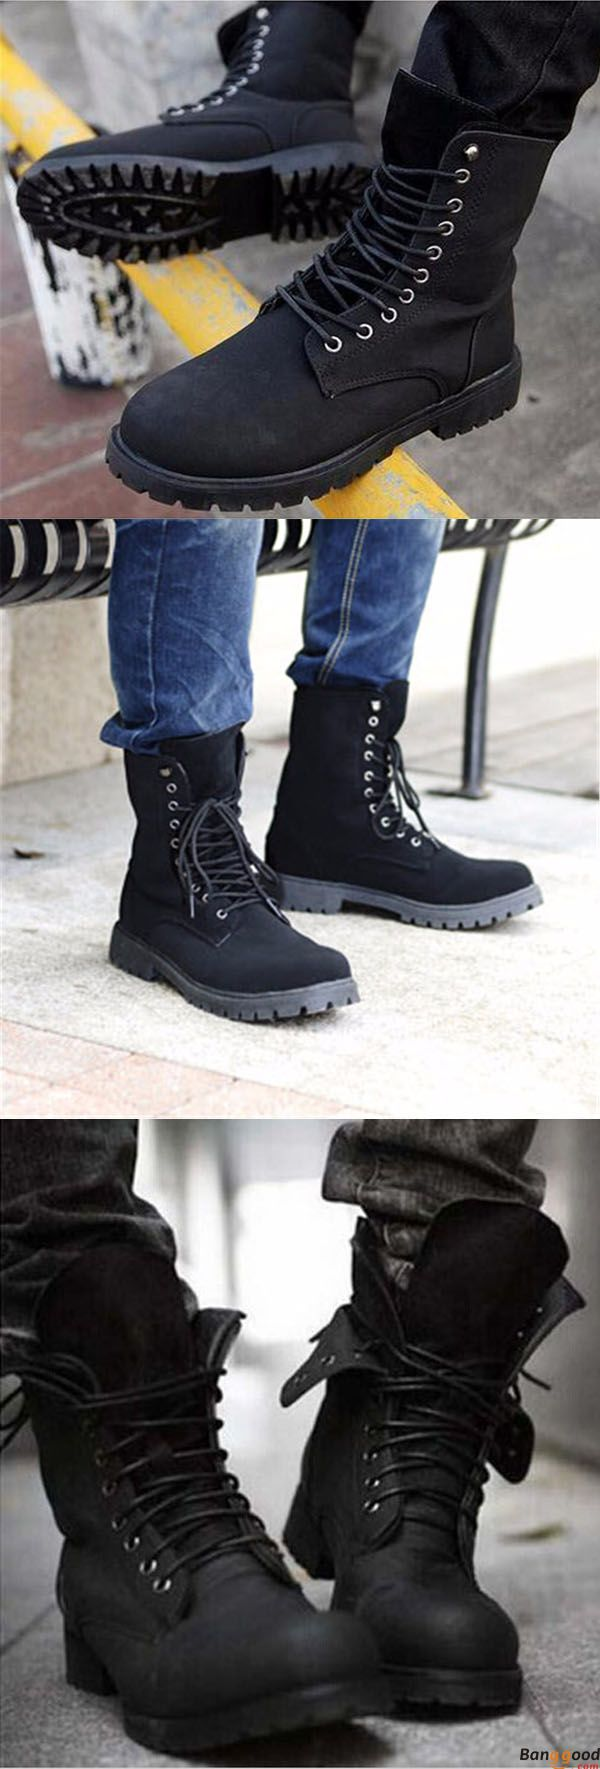 US$37.99 + Free shipping. Winter Boots, Men's Boots, British Style Boots, Fash…